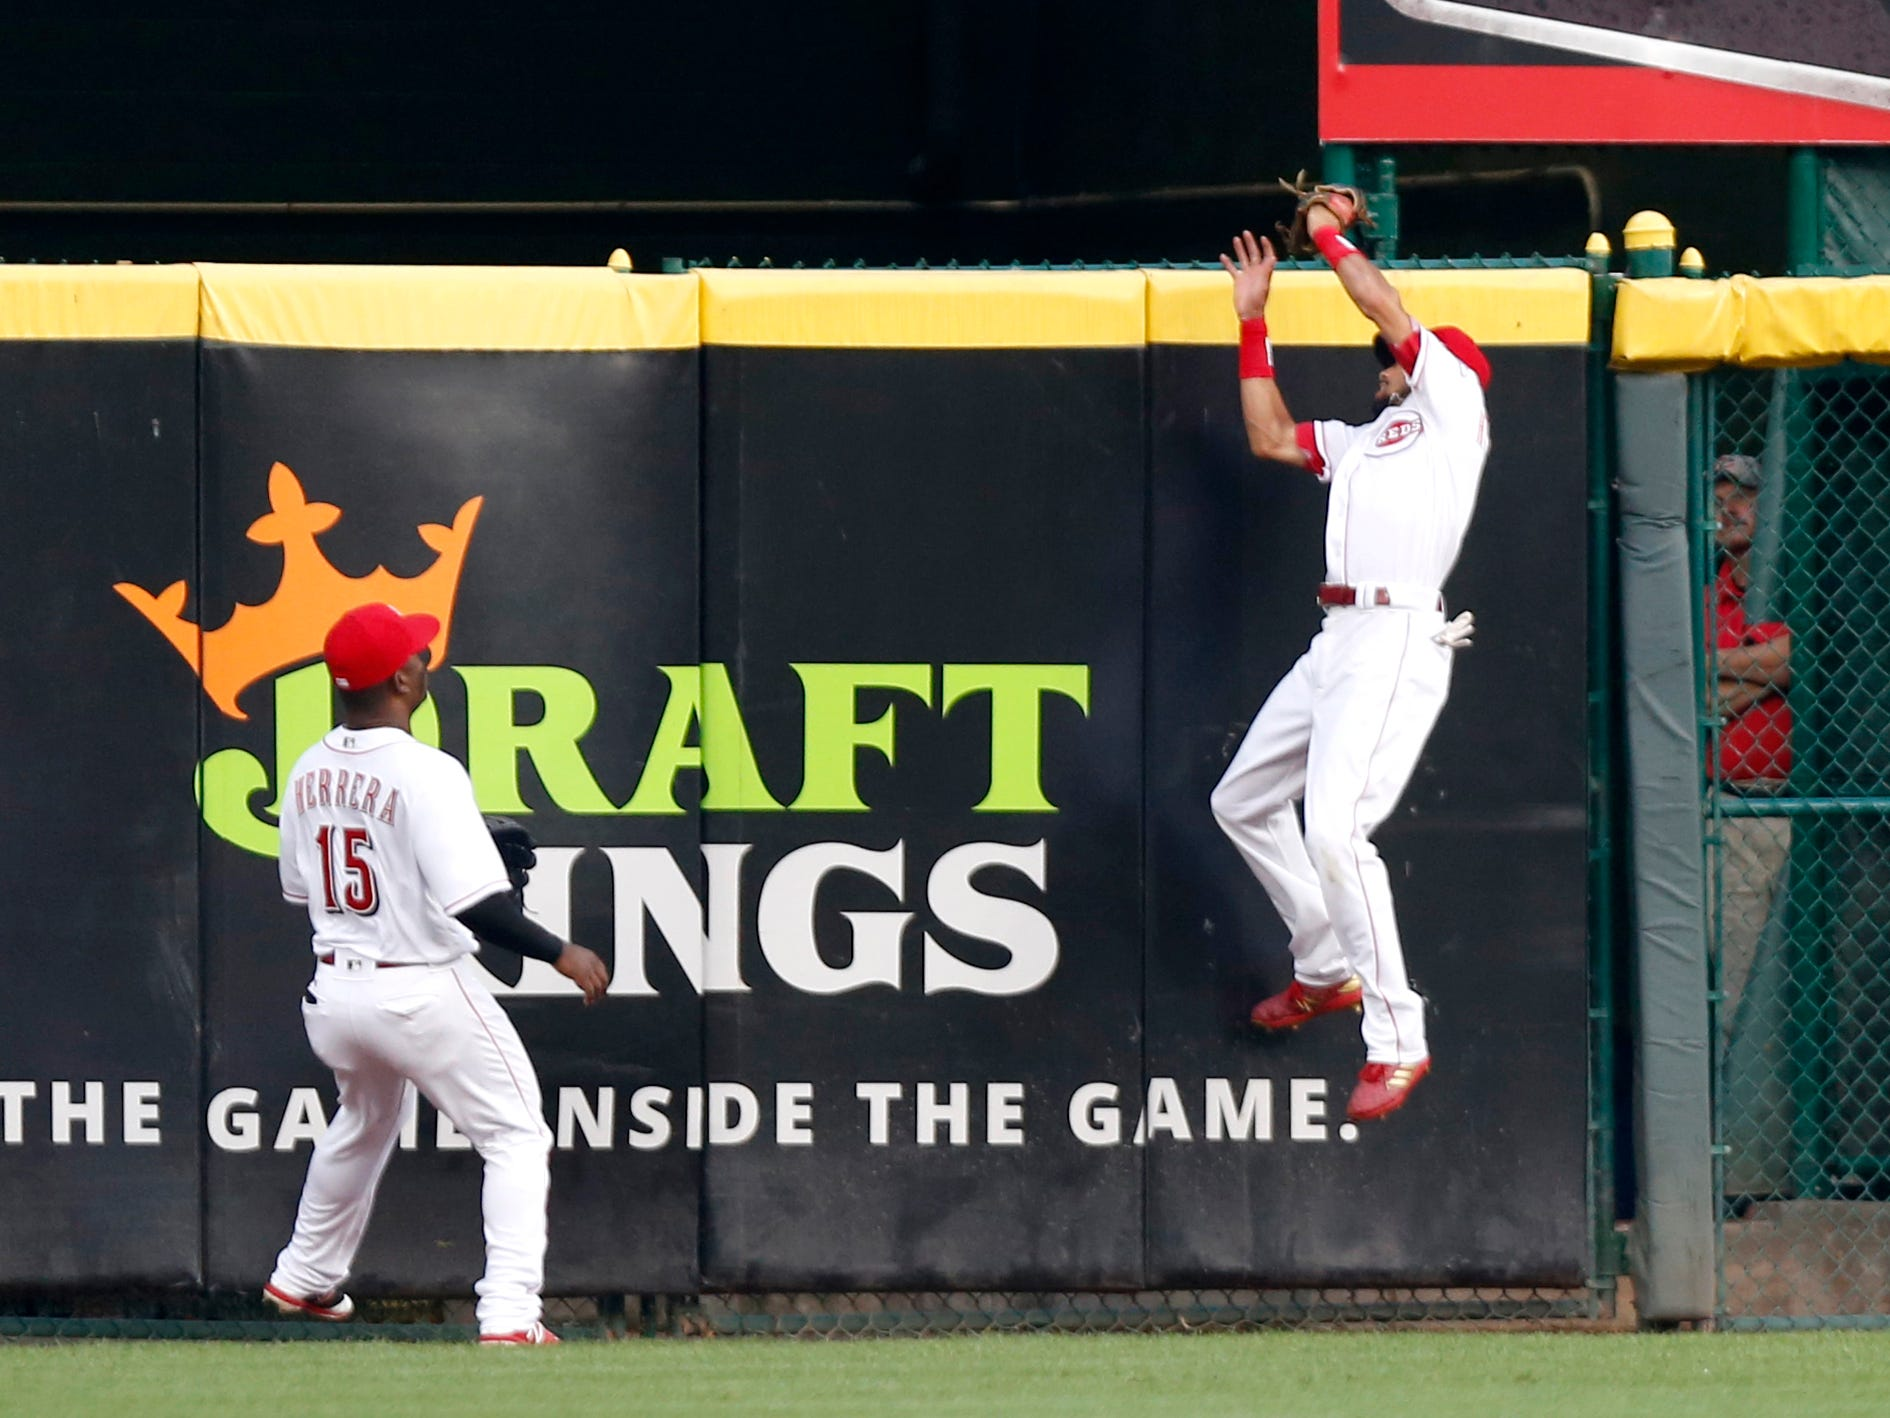 Aug 11, 2018; Cincinnati, OH, USA; Cincinnati Reds center fielder Billy Hamilton (right) fields a fly ball at the wall from Arizona Diamondbacks first baseman Paul Goldschmidt (not pictured) during the first inning at Great American Ball Park. Reds Dilson Herrera watches at left. Mandatory Credit: David Kohl-USA TODAY Sports